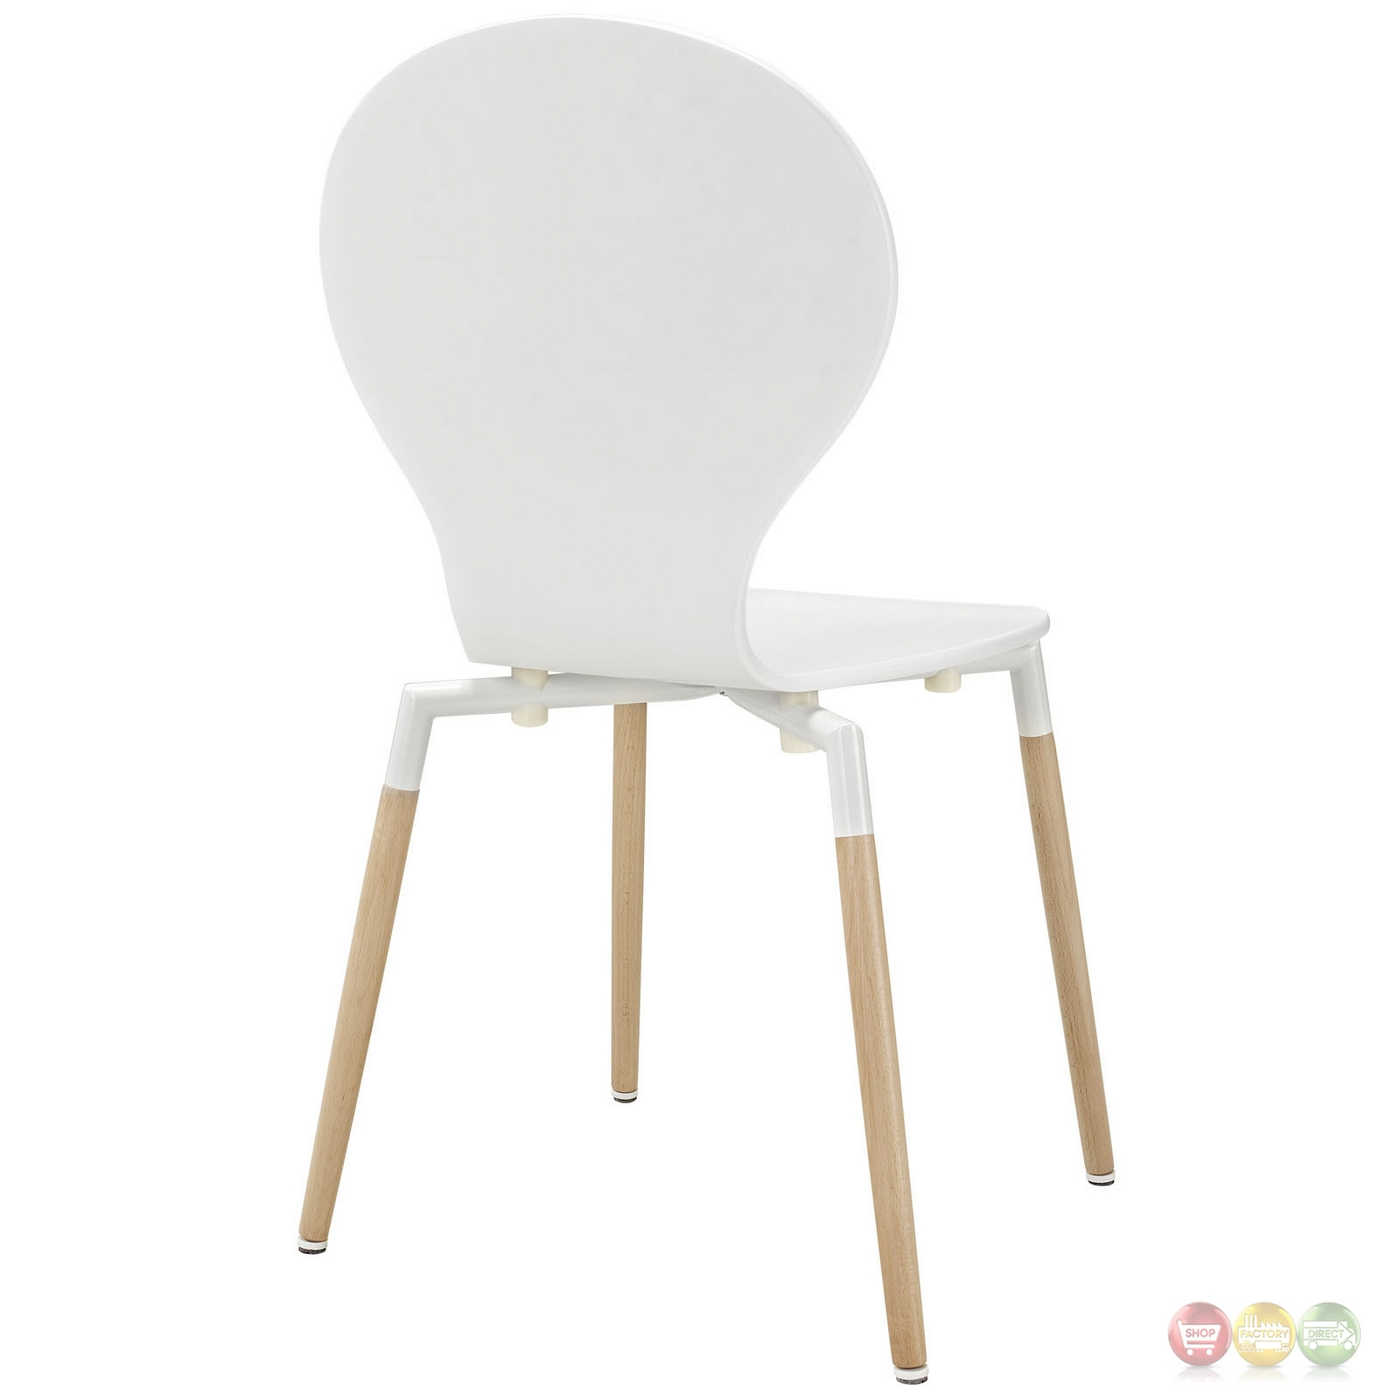 Path Stylish Contemporary Wood Dining Side Chair, White